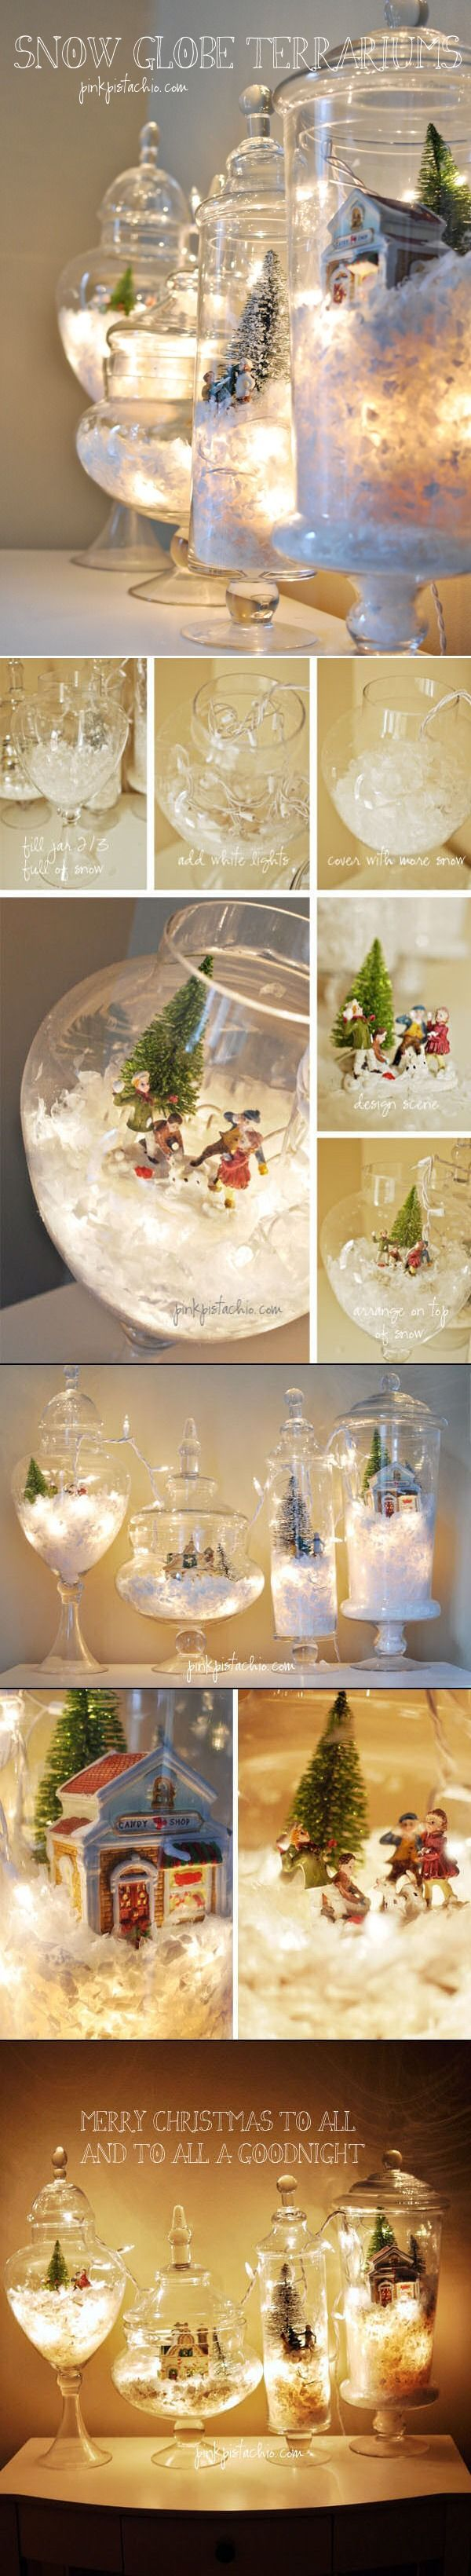 DIY Snow Globe Terrariums Pictures, Photos, and Images for Facebook, Tumblr, Pinterest, and Twitter